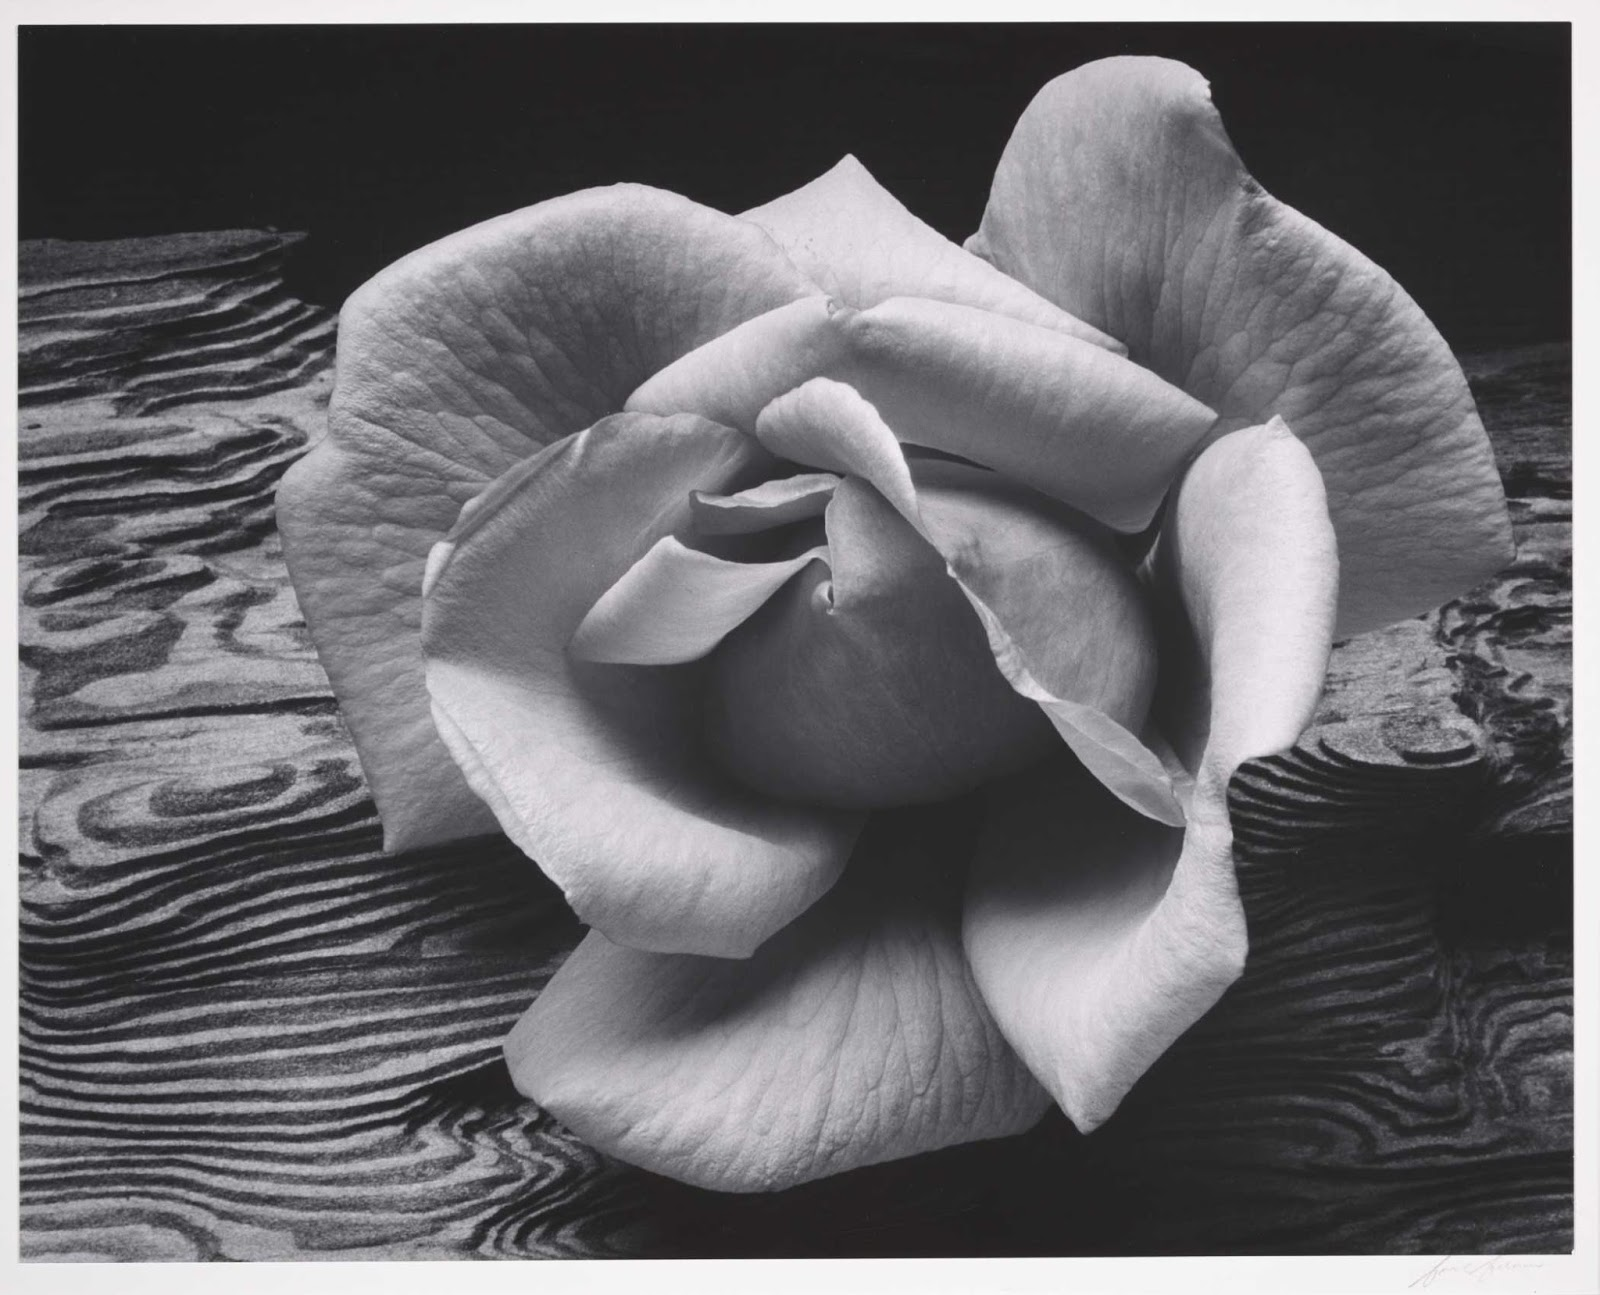 1932. Rose & Driftwood. Ansel Adams